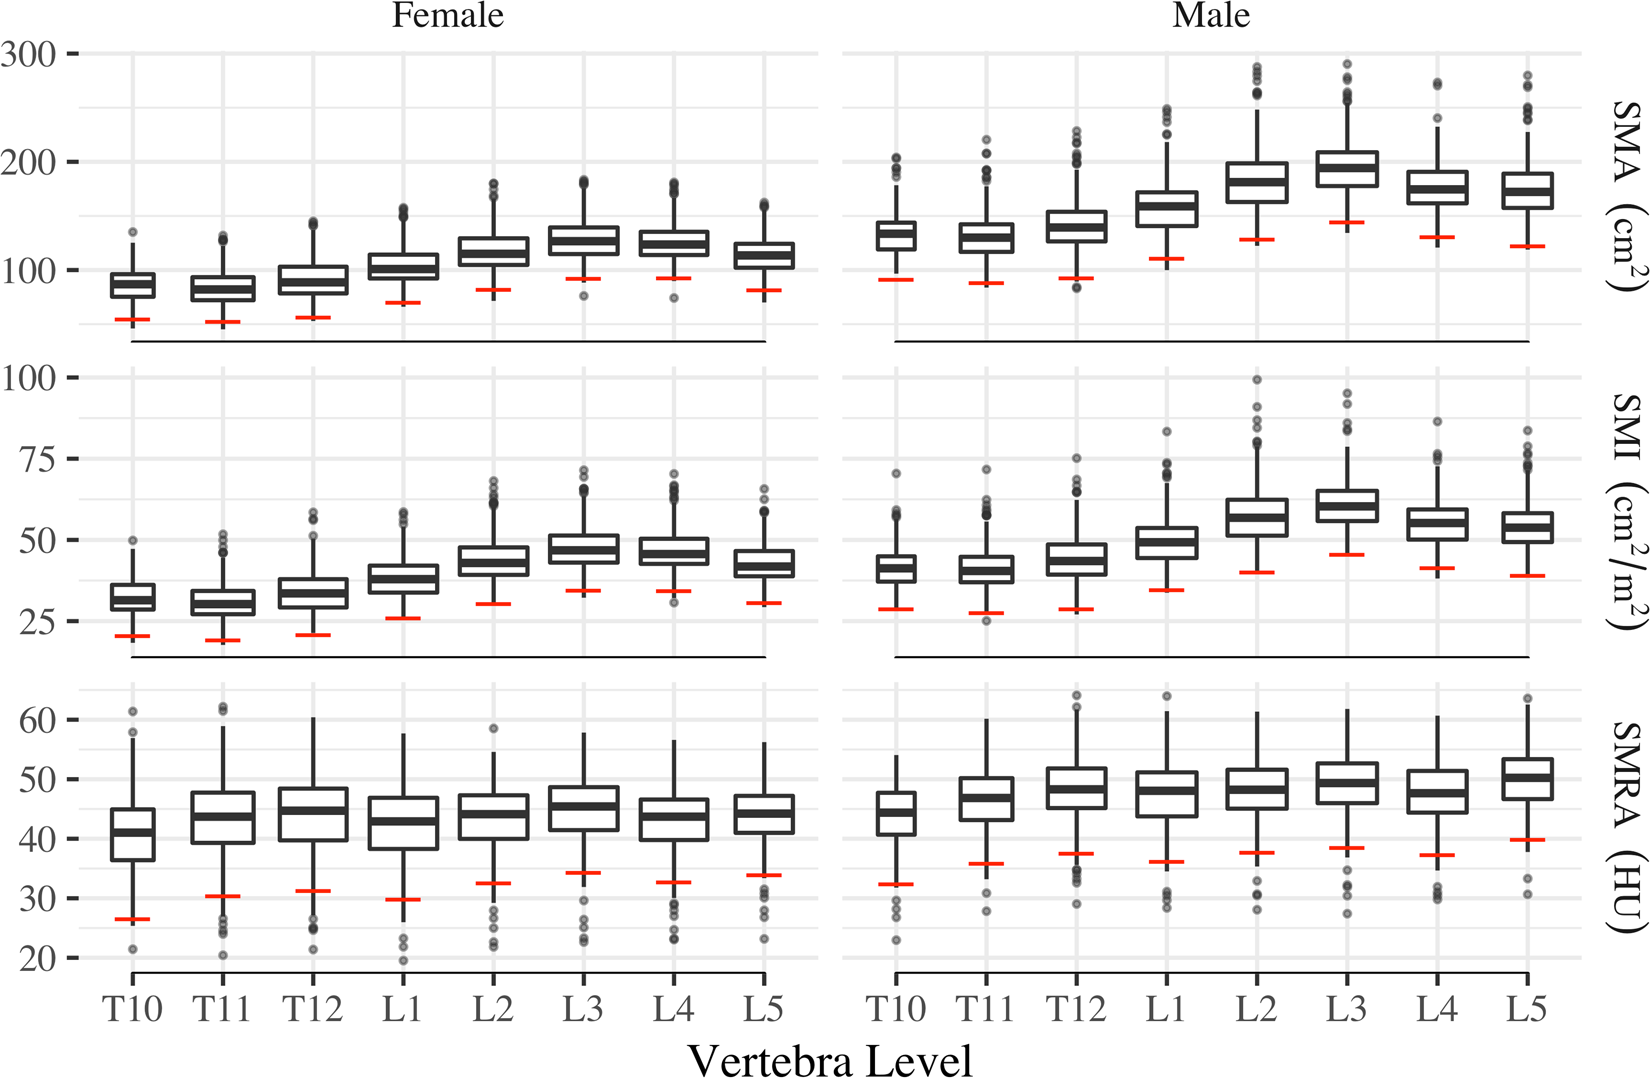 Skeletal muscle cutoff values for sarcopenia diagnosis using T10 to